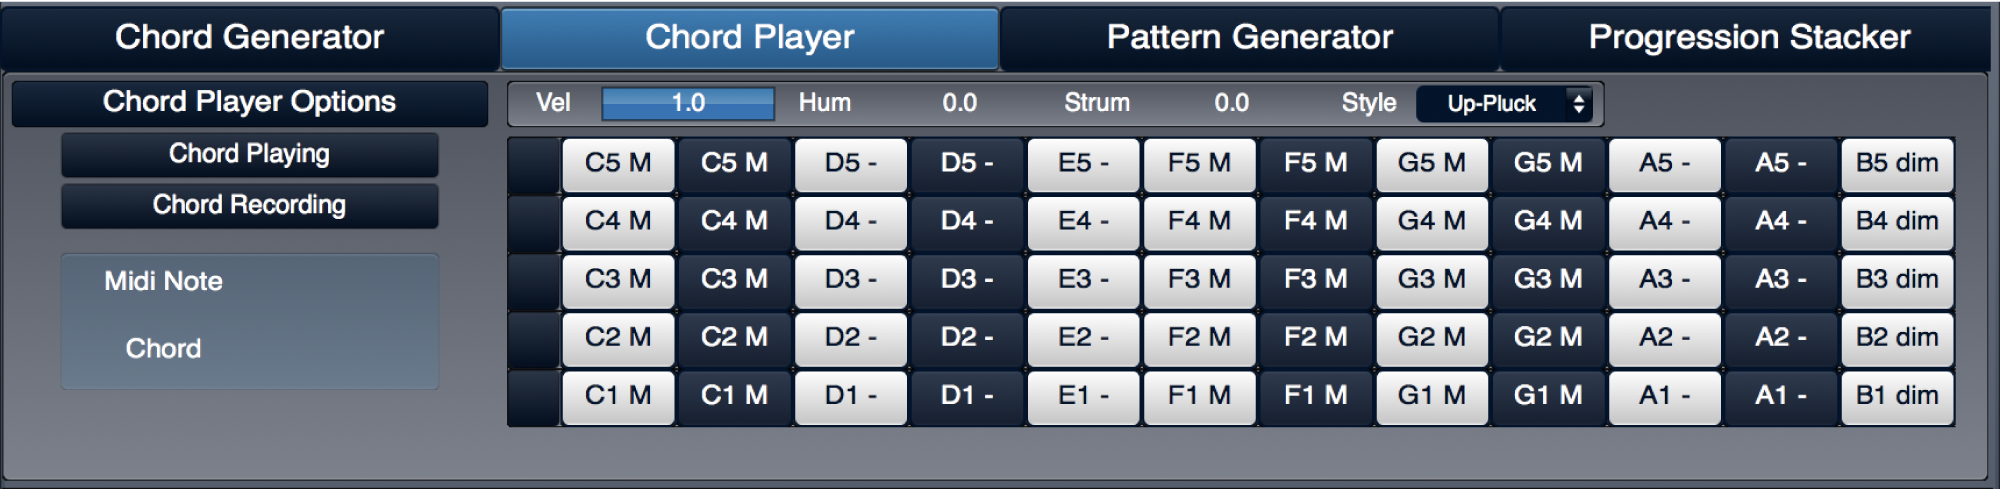 Chord Composer | The Ultimate Chord Progression Plug-in